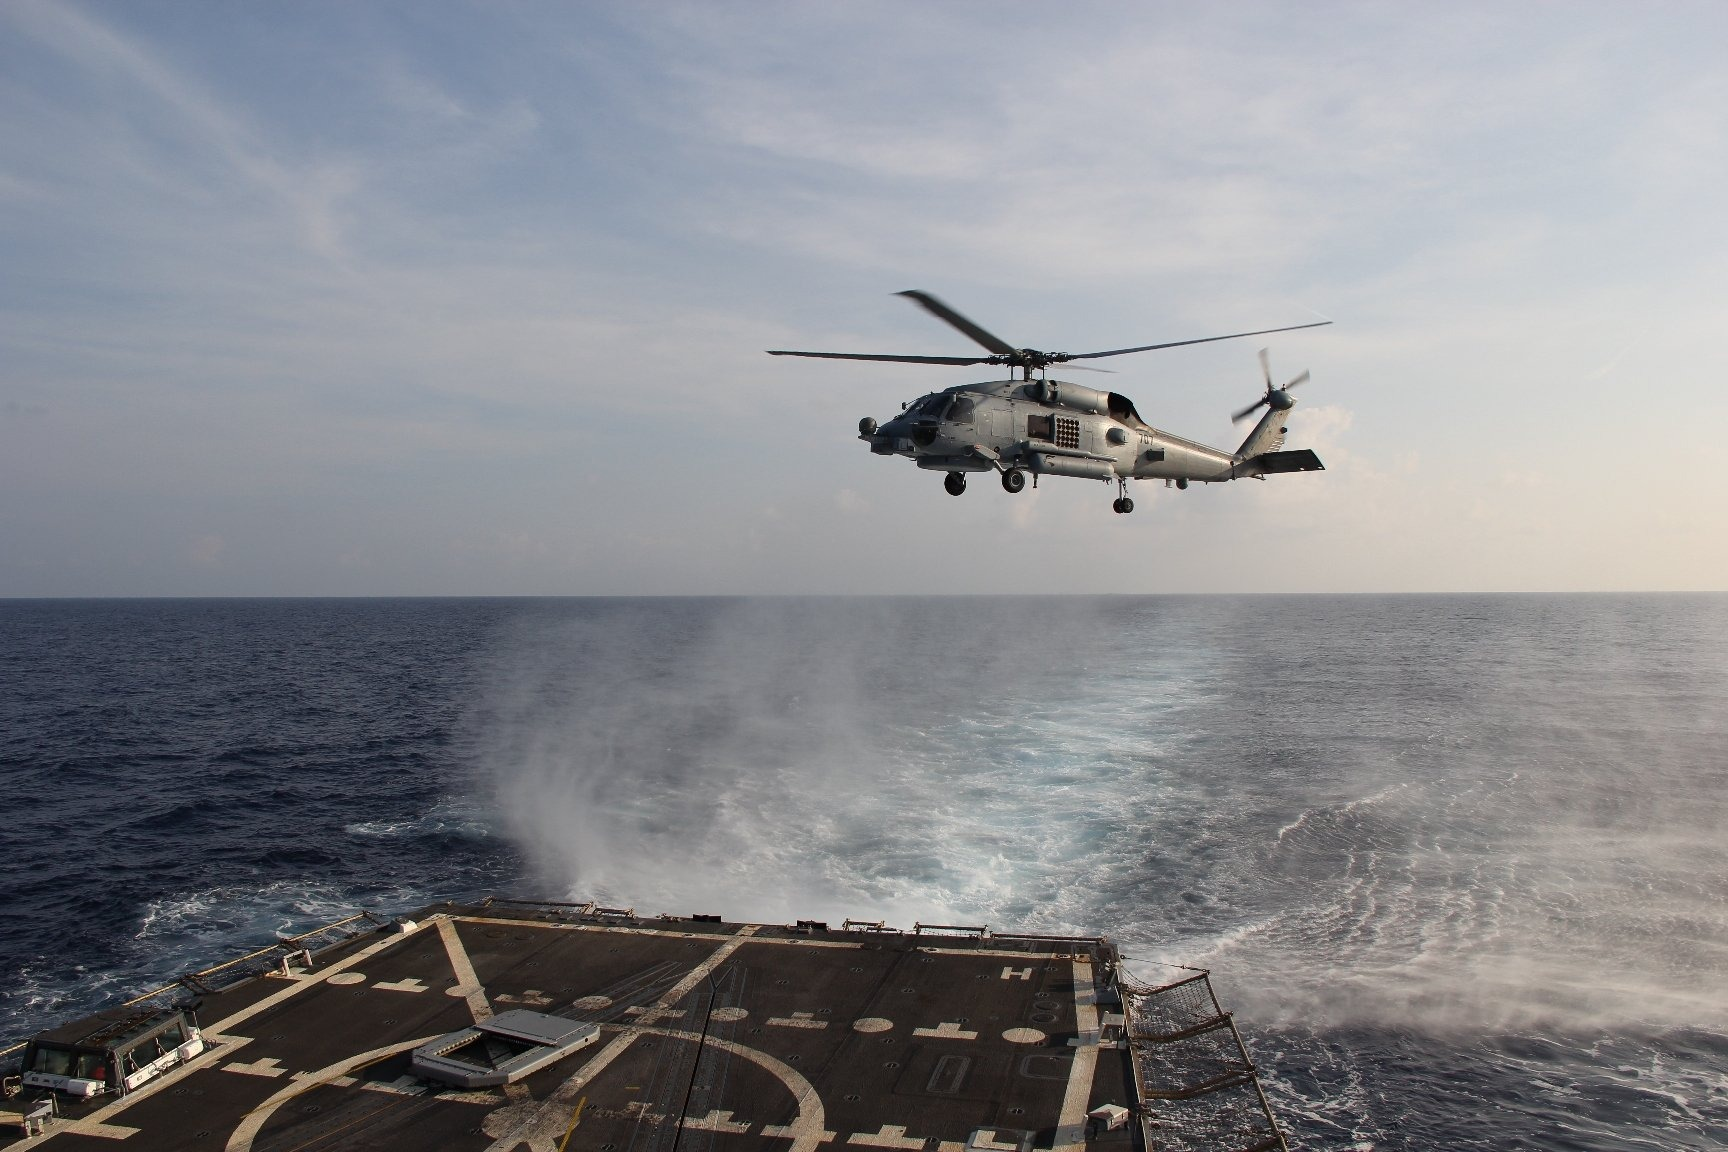 A Sea Hawk helicopter departs from the U.S.S. Pinckney to search for the missing Malaysia Airlines aircraft on March 9, 2014